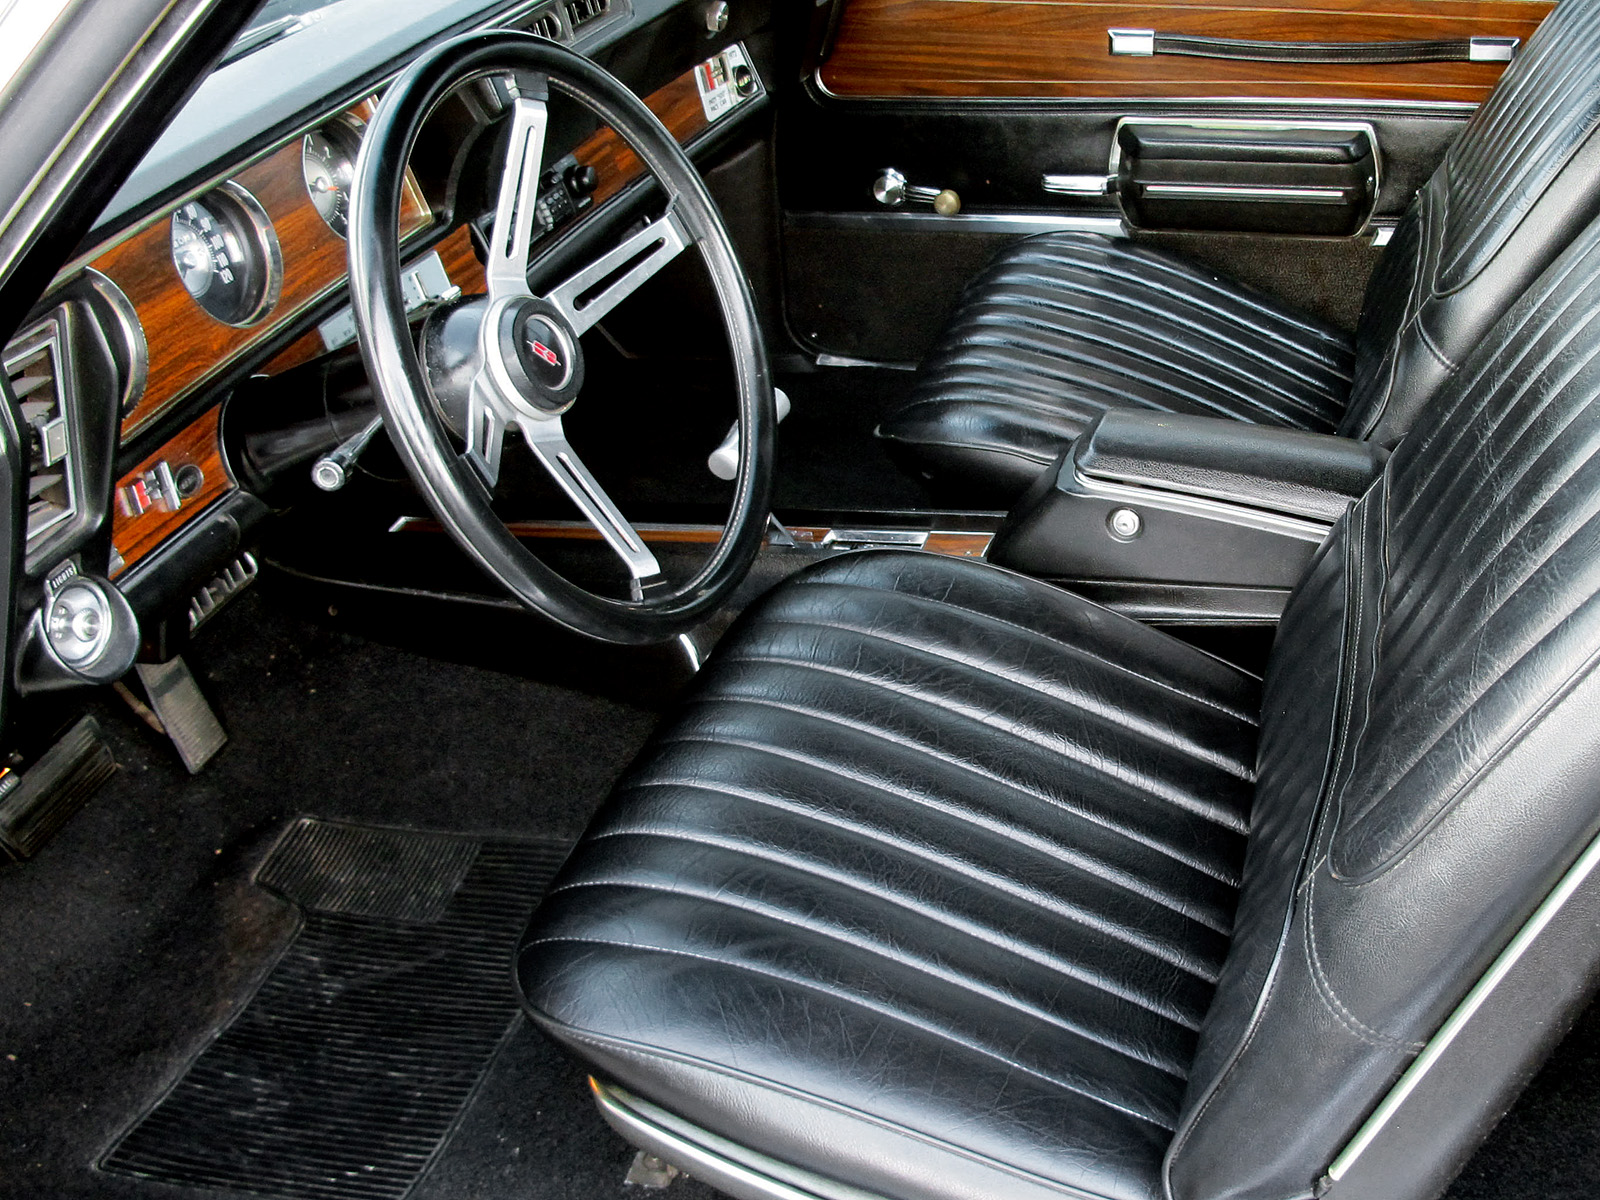 1972 Hurst Oldsmobile Cutlass Supreme Hardtop Coupe Indy 500 Pace Muscle Race Racing Interior F